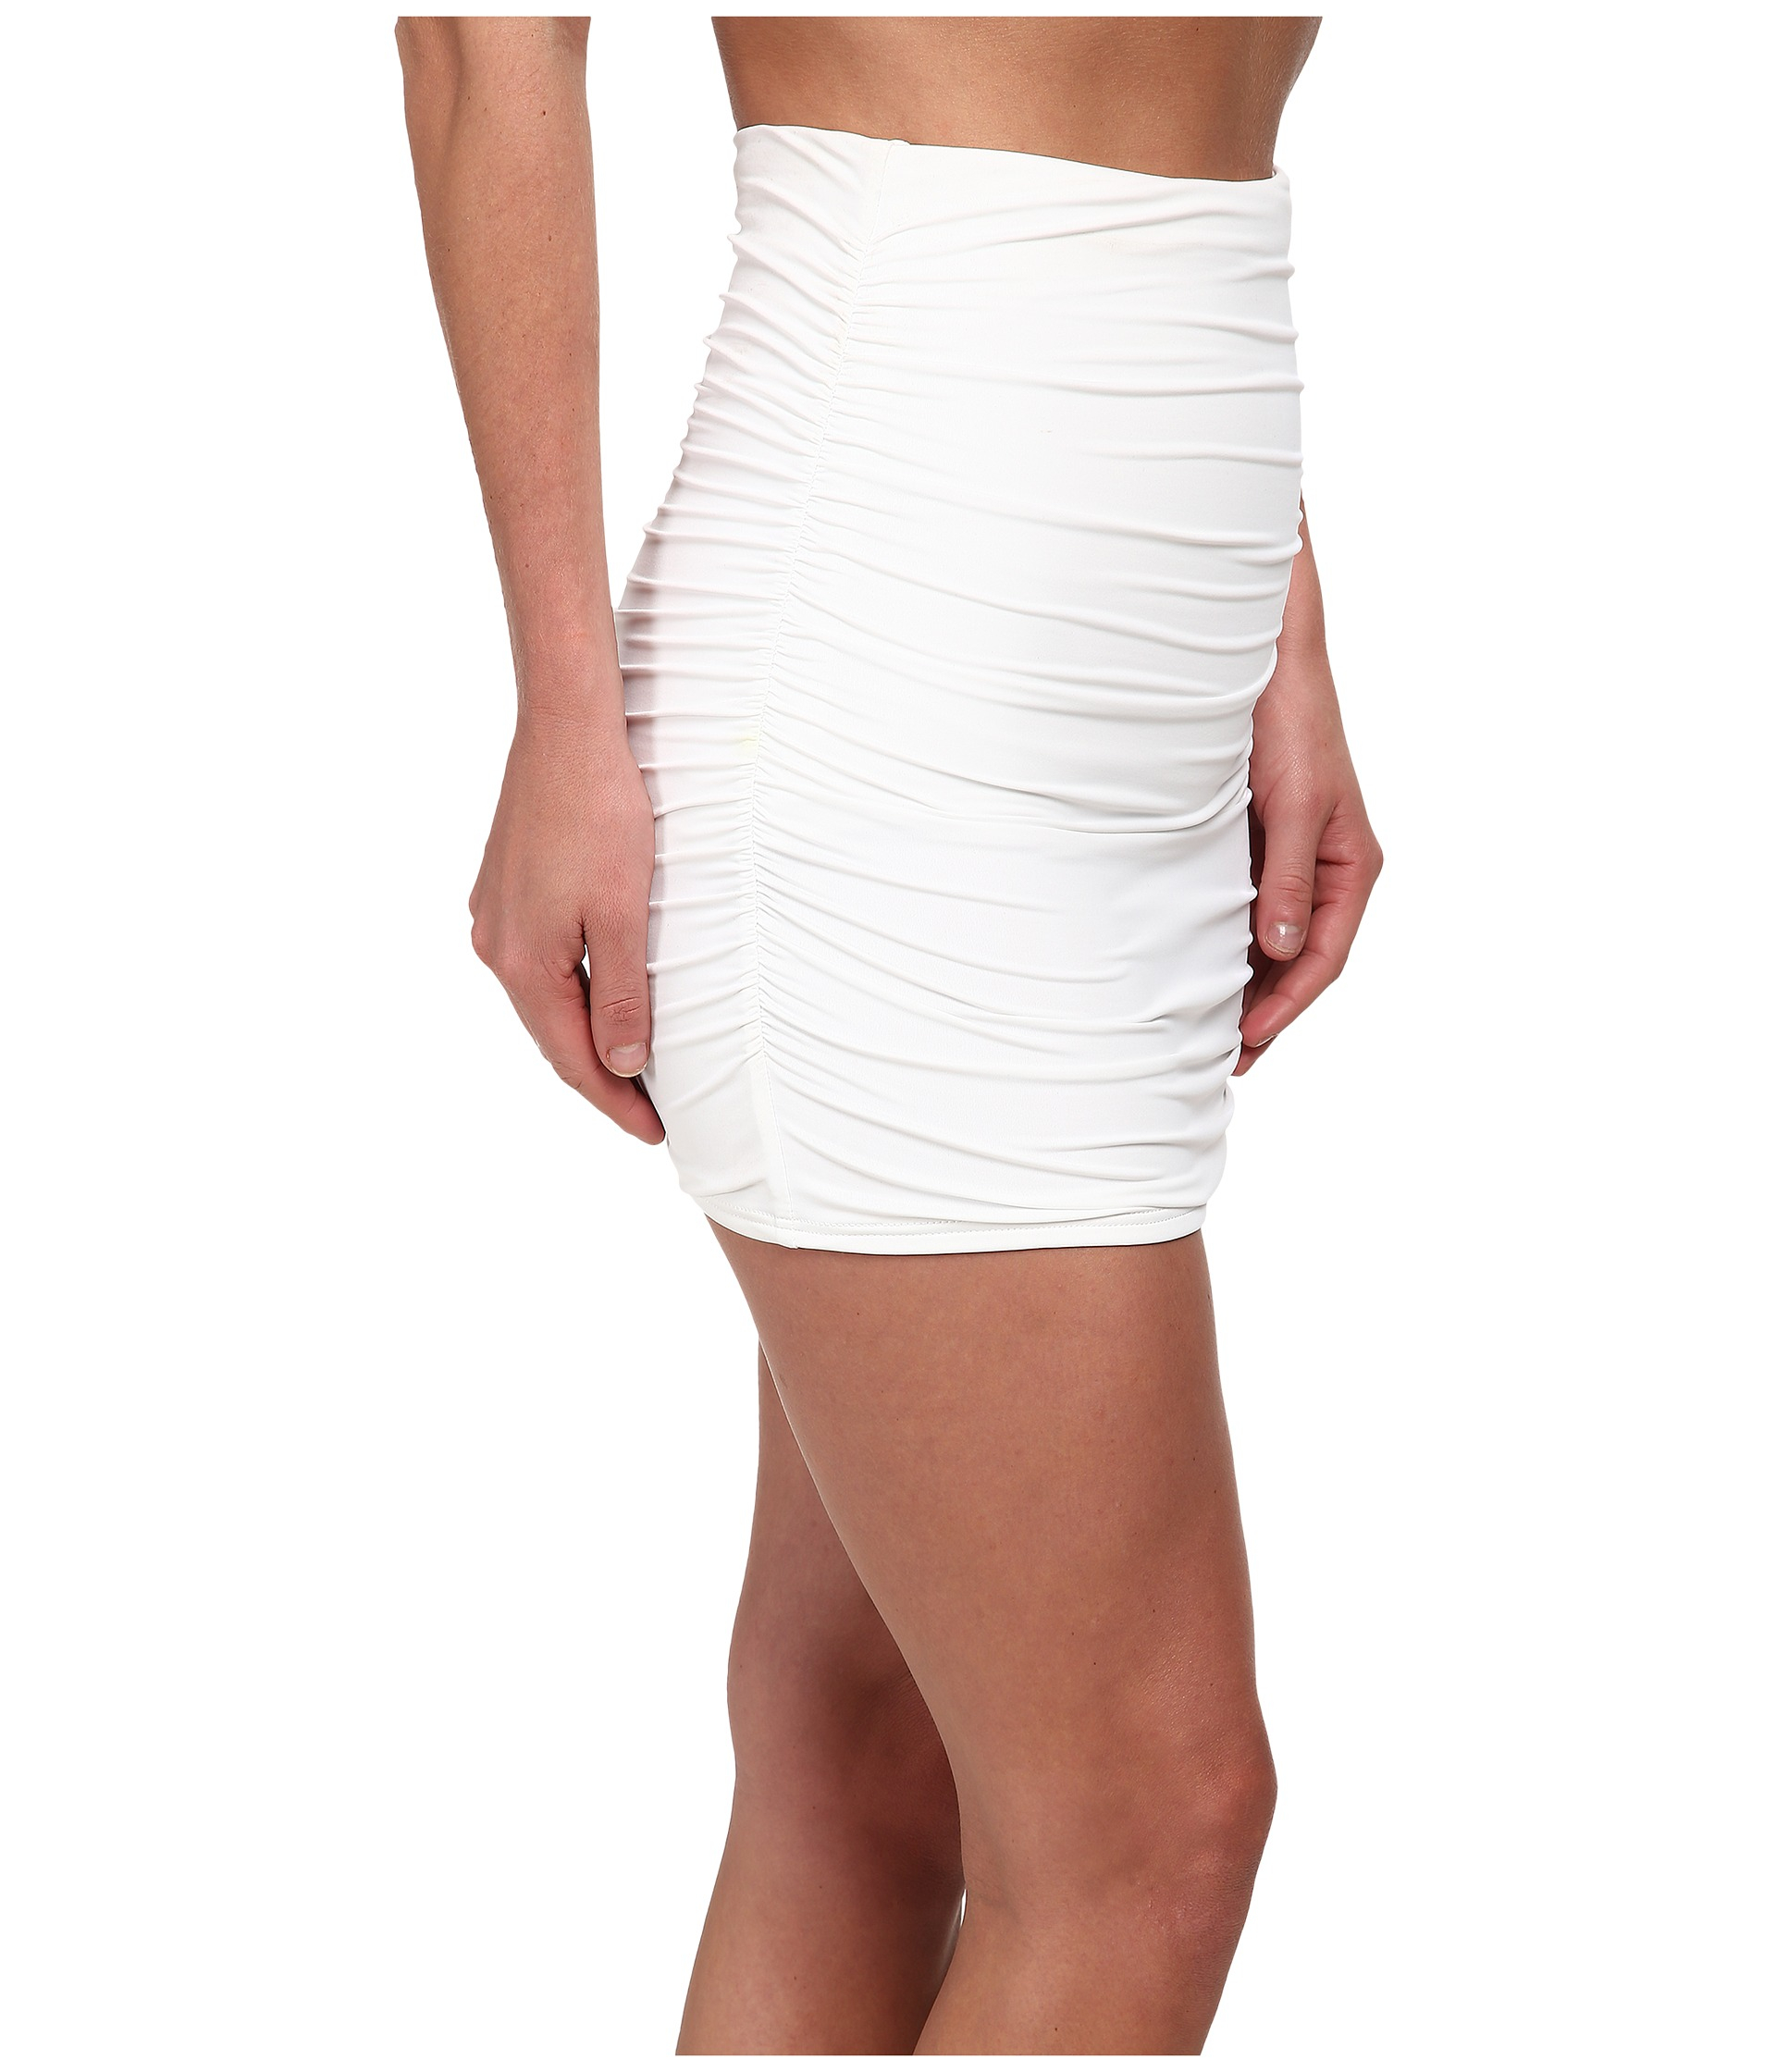 aea2c1c1ee6 Womens High Waisted Swim Skirt - raveitsafe